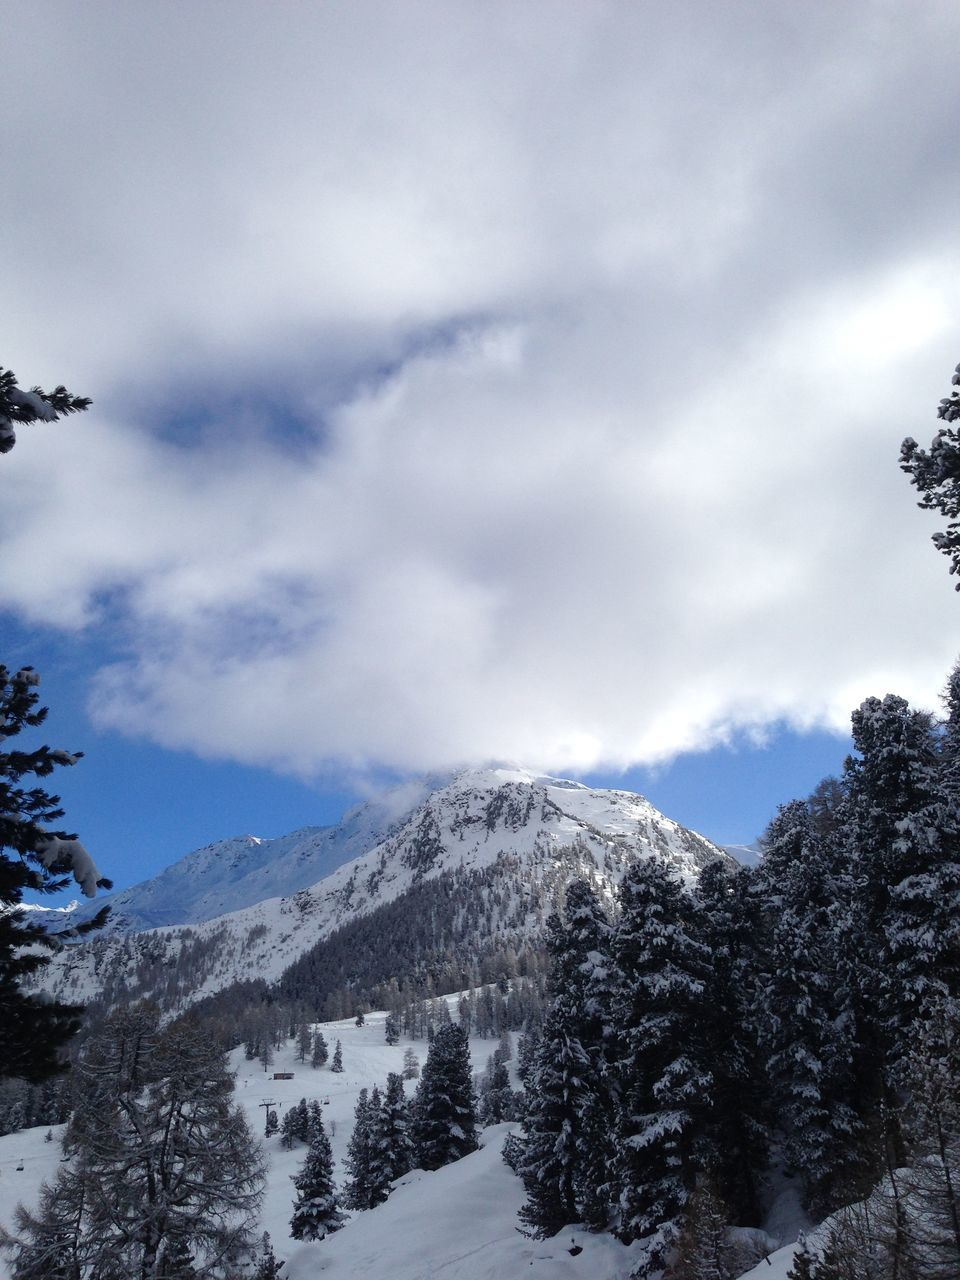 snow, mountain, sky, nature, winter, range, landscape, cold temperature, beauty in nature, outdoors, peak, no people, scenery, high, day